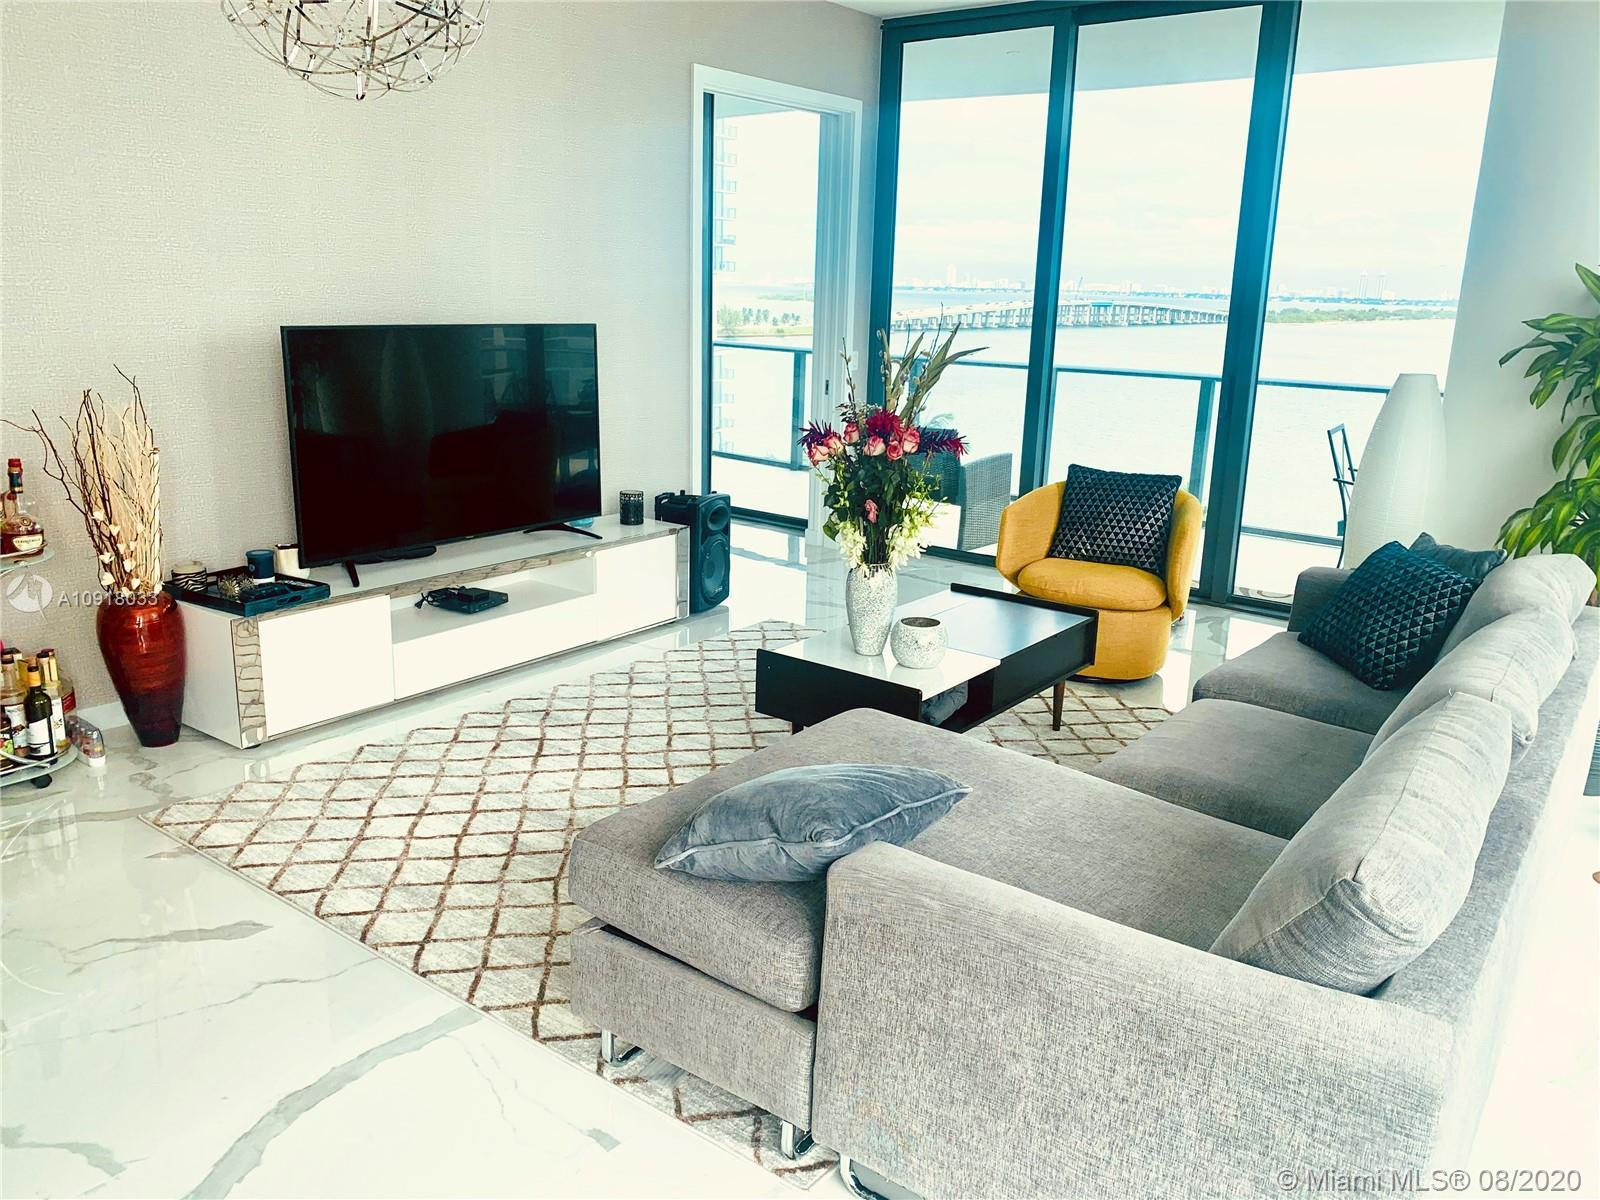 Incredible Gran Paraiso desired 4 bedrooms suites Unit. 700ft of Wrap around balcony. Amazing Views,